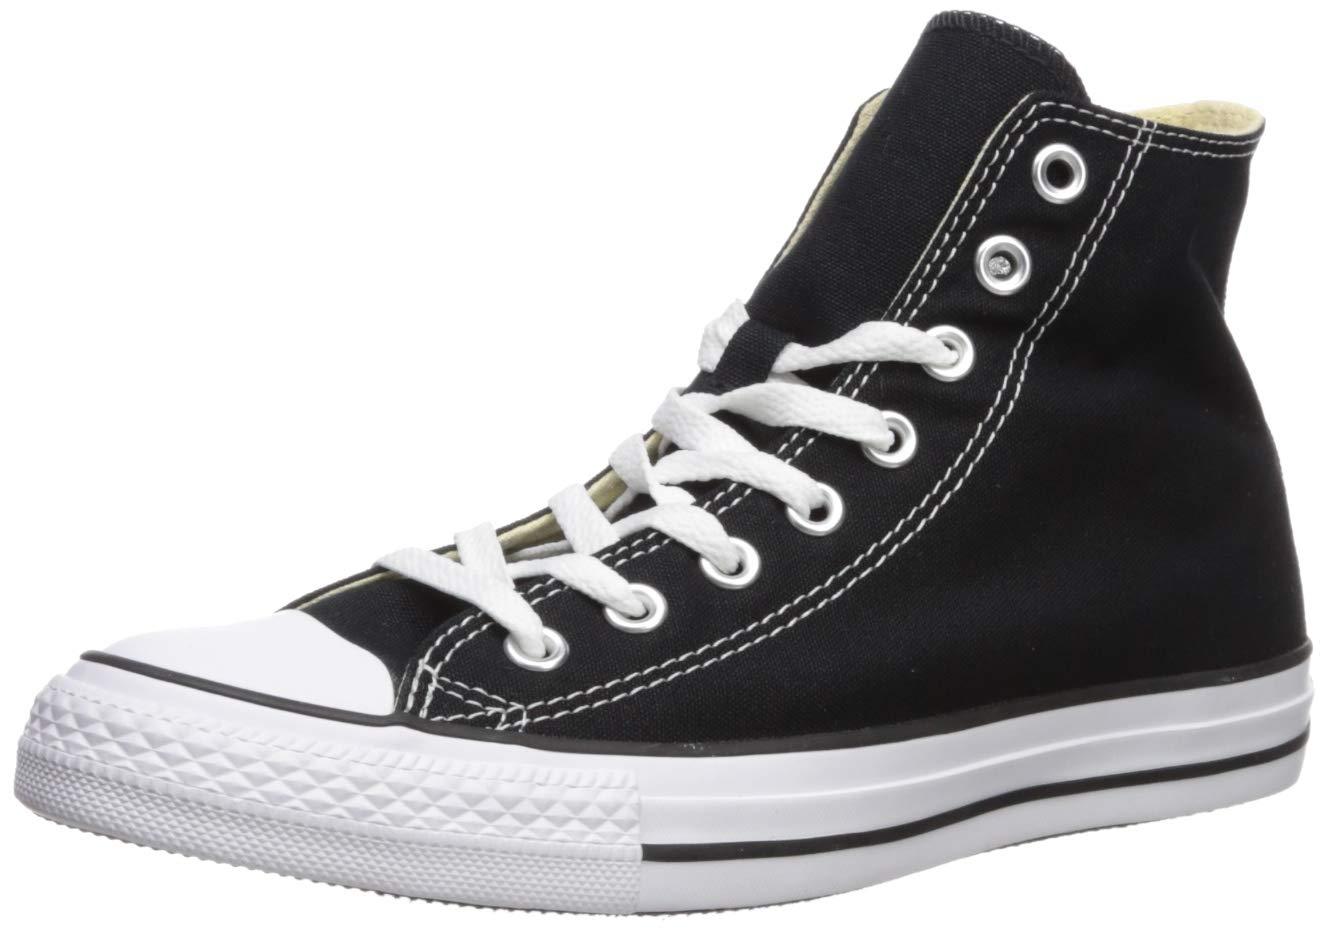 ad0f9ae03e39 Galleon - Converse Clothing   Apparel Chuck Taylor All Star High Top  Sneaker